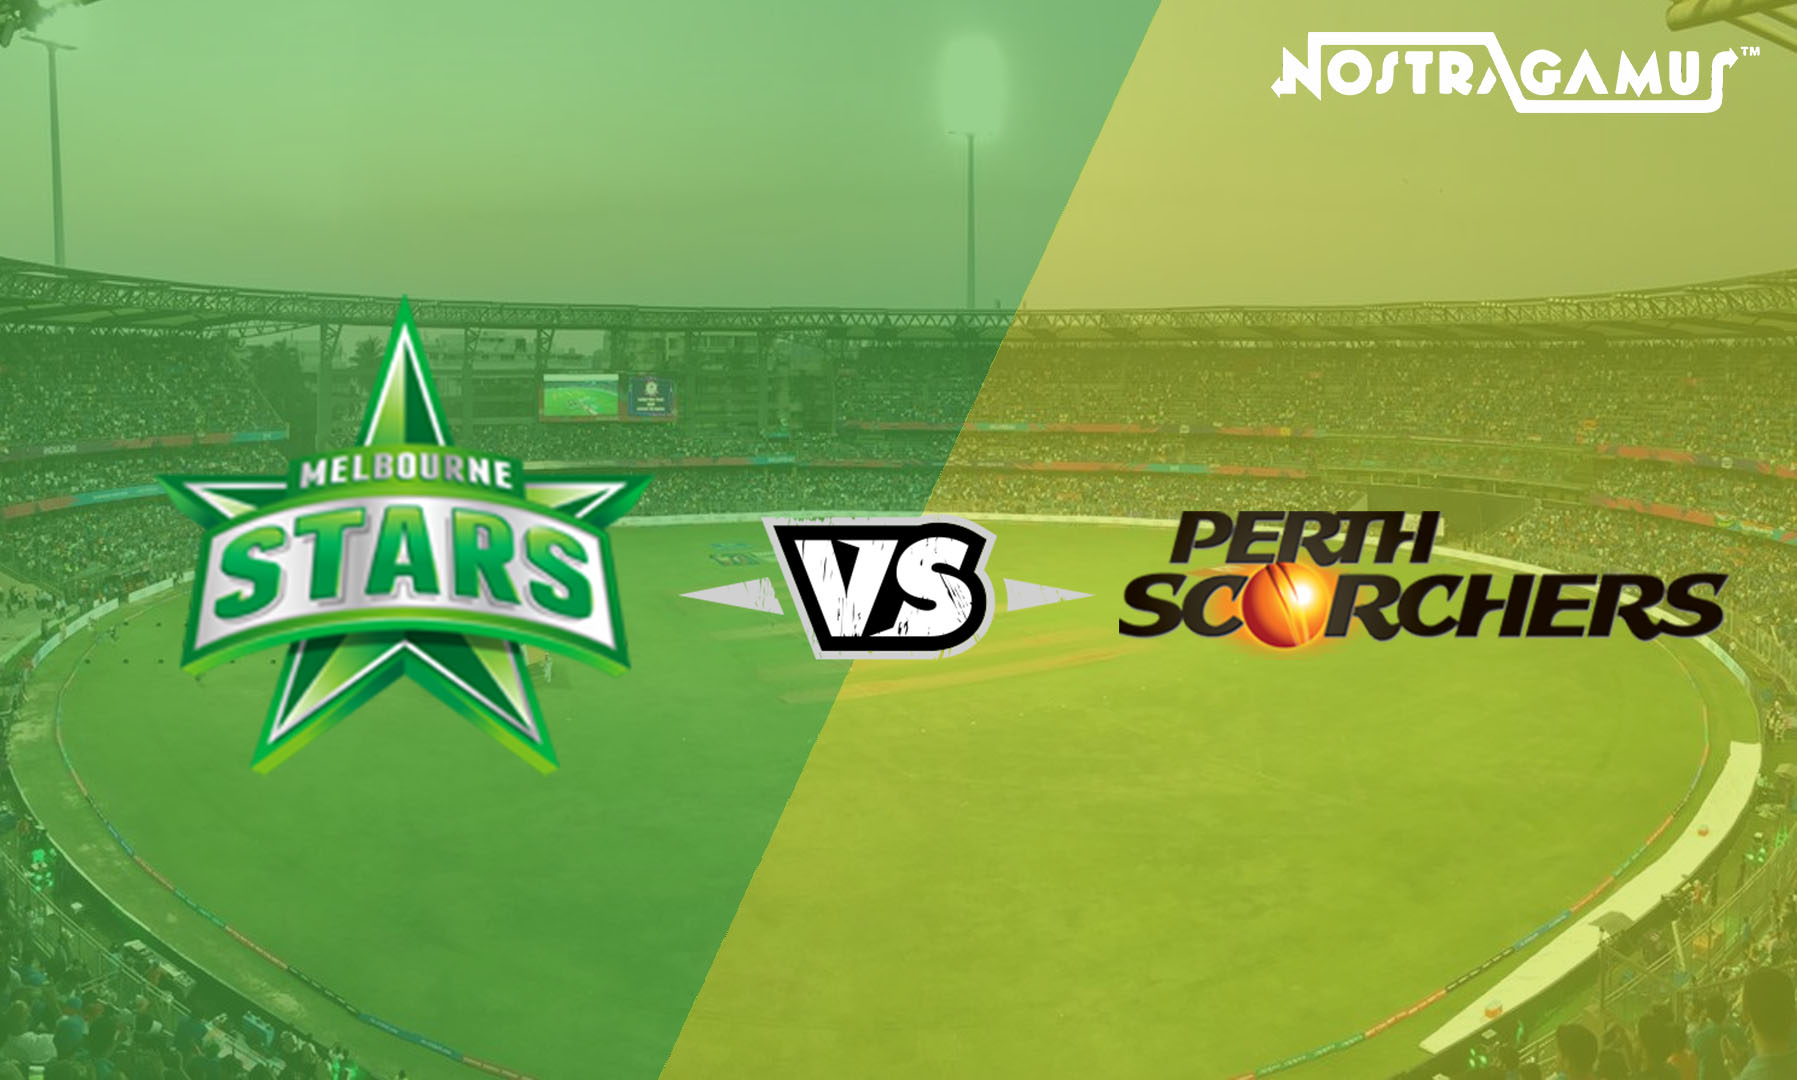 Big Bash League Predictions: Perth Scorchers vs Melbourne Stars